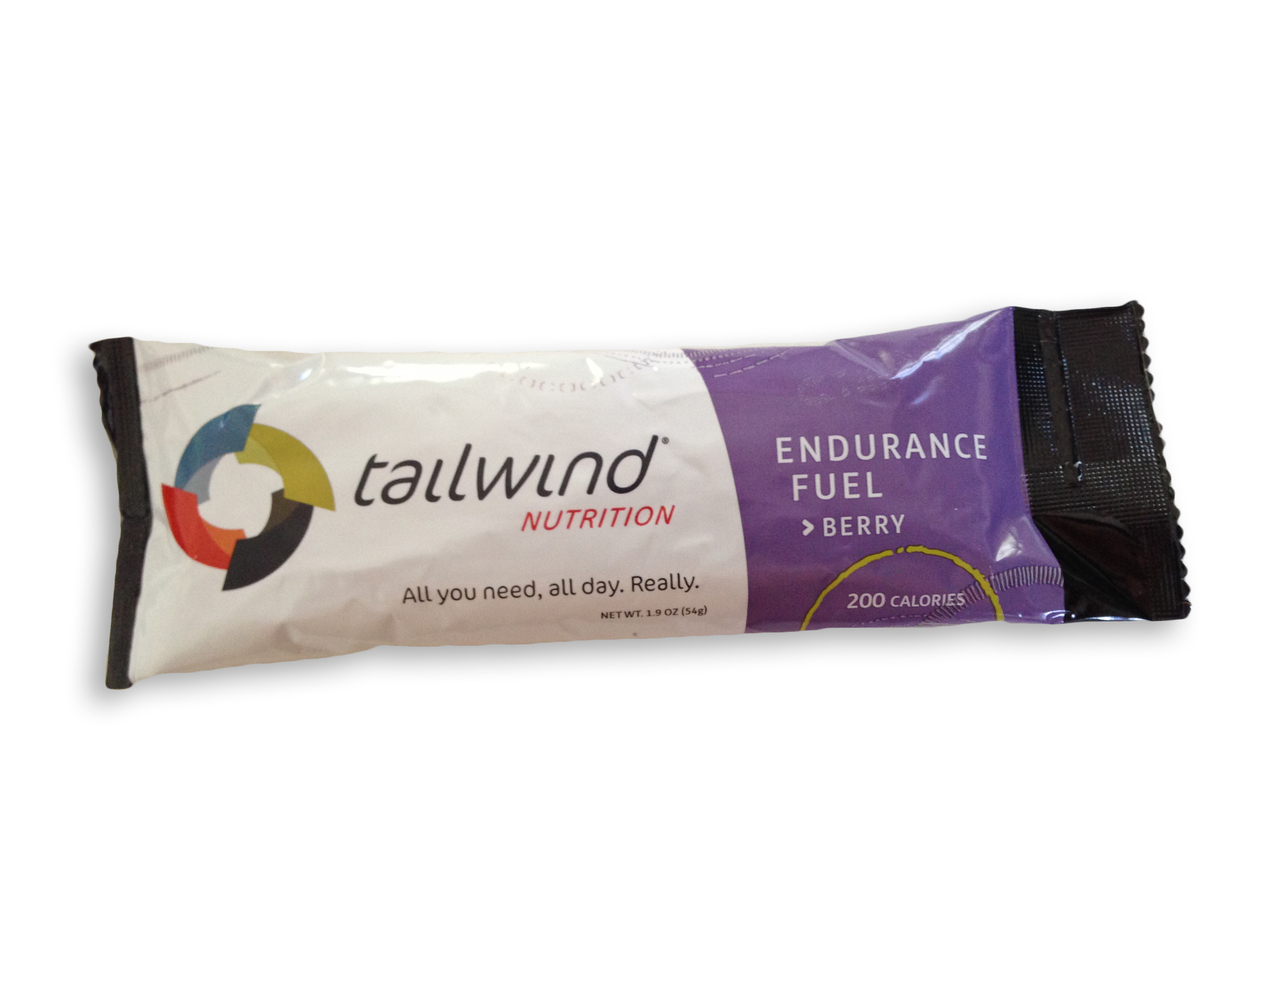 Tailwind Endurance Fuel Drink Mix - Singles - Flavor: Berry - Size: Box of 12, Berry, large, image 1